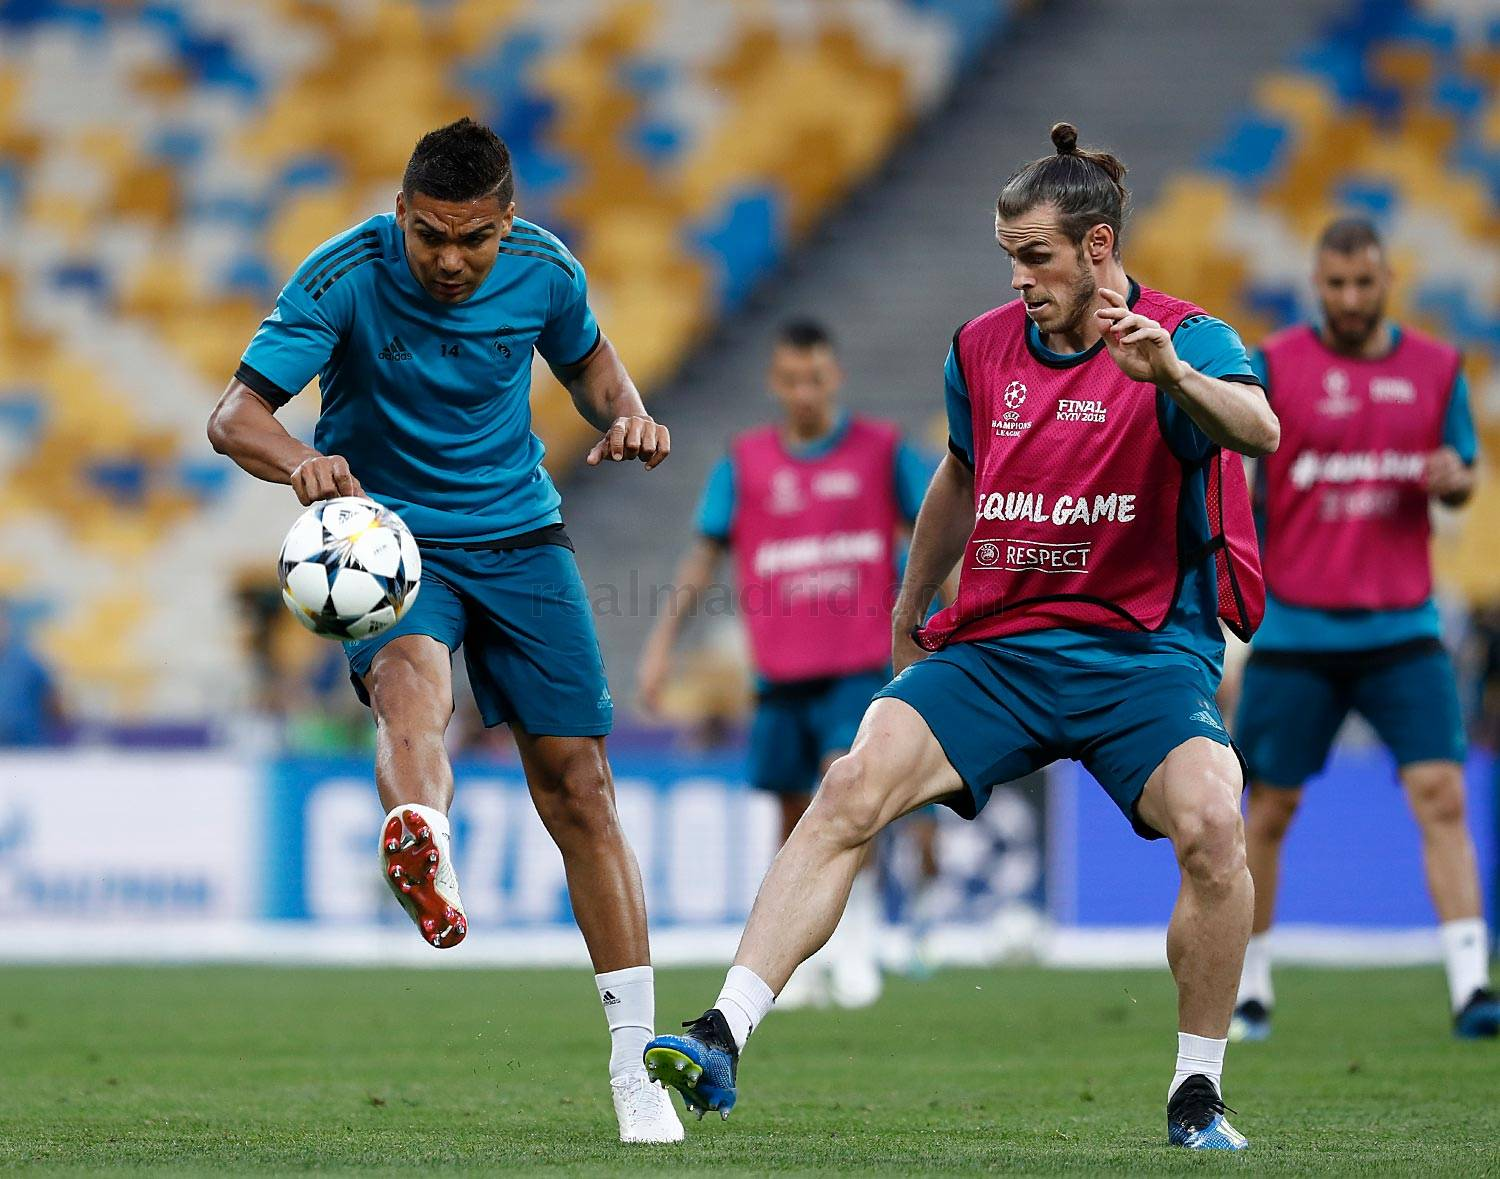 Real Madrid - Entrenamiento del Real Madrid en Kiev - 25-05-2018